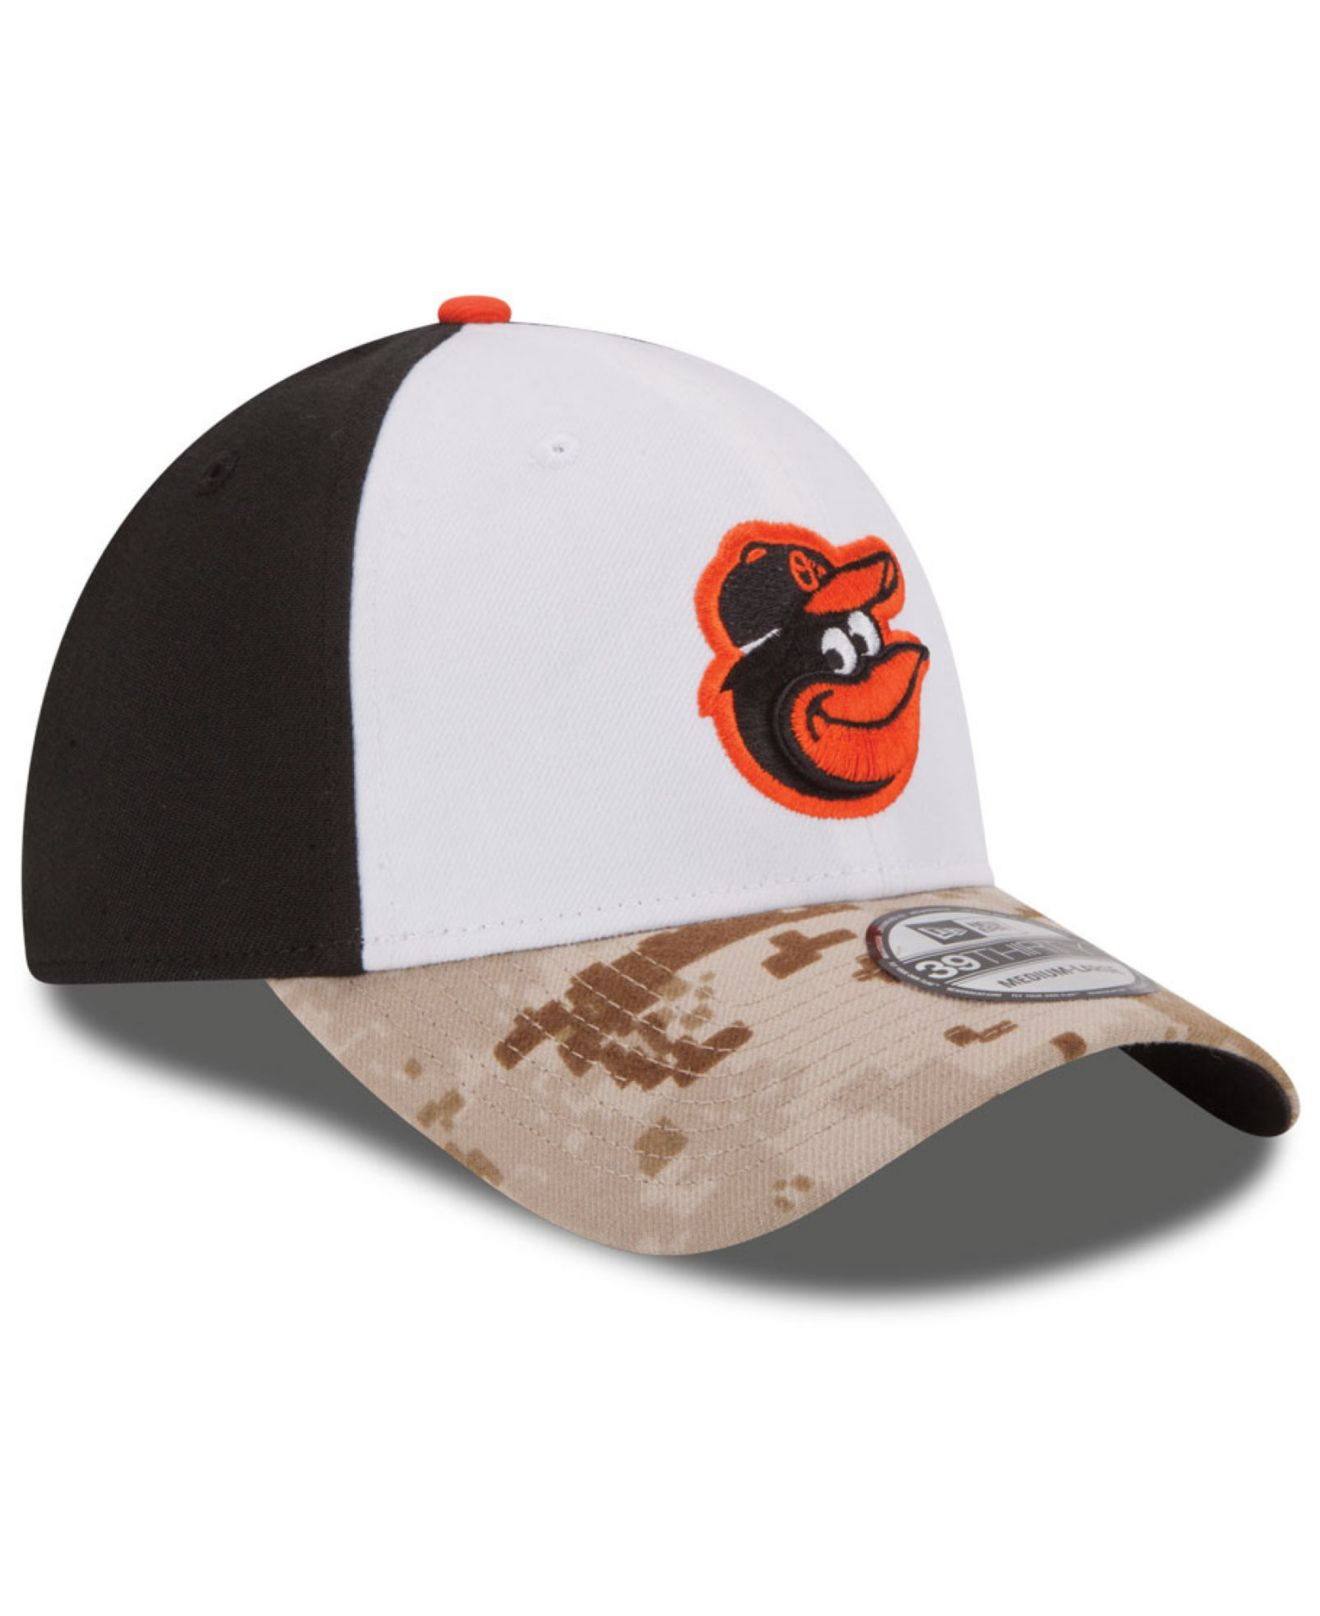 more photos d235d 04337 italy baltimore orioles new era 2018 memorial day 9fifty adjustable  snapback hat d07fa 26392  australia baltimore orioles new era hats 90f19  28e92